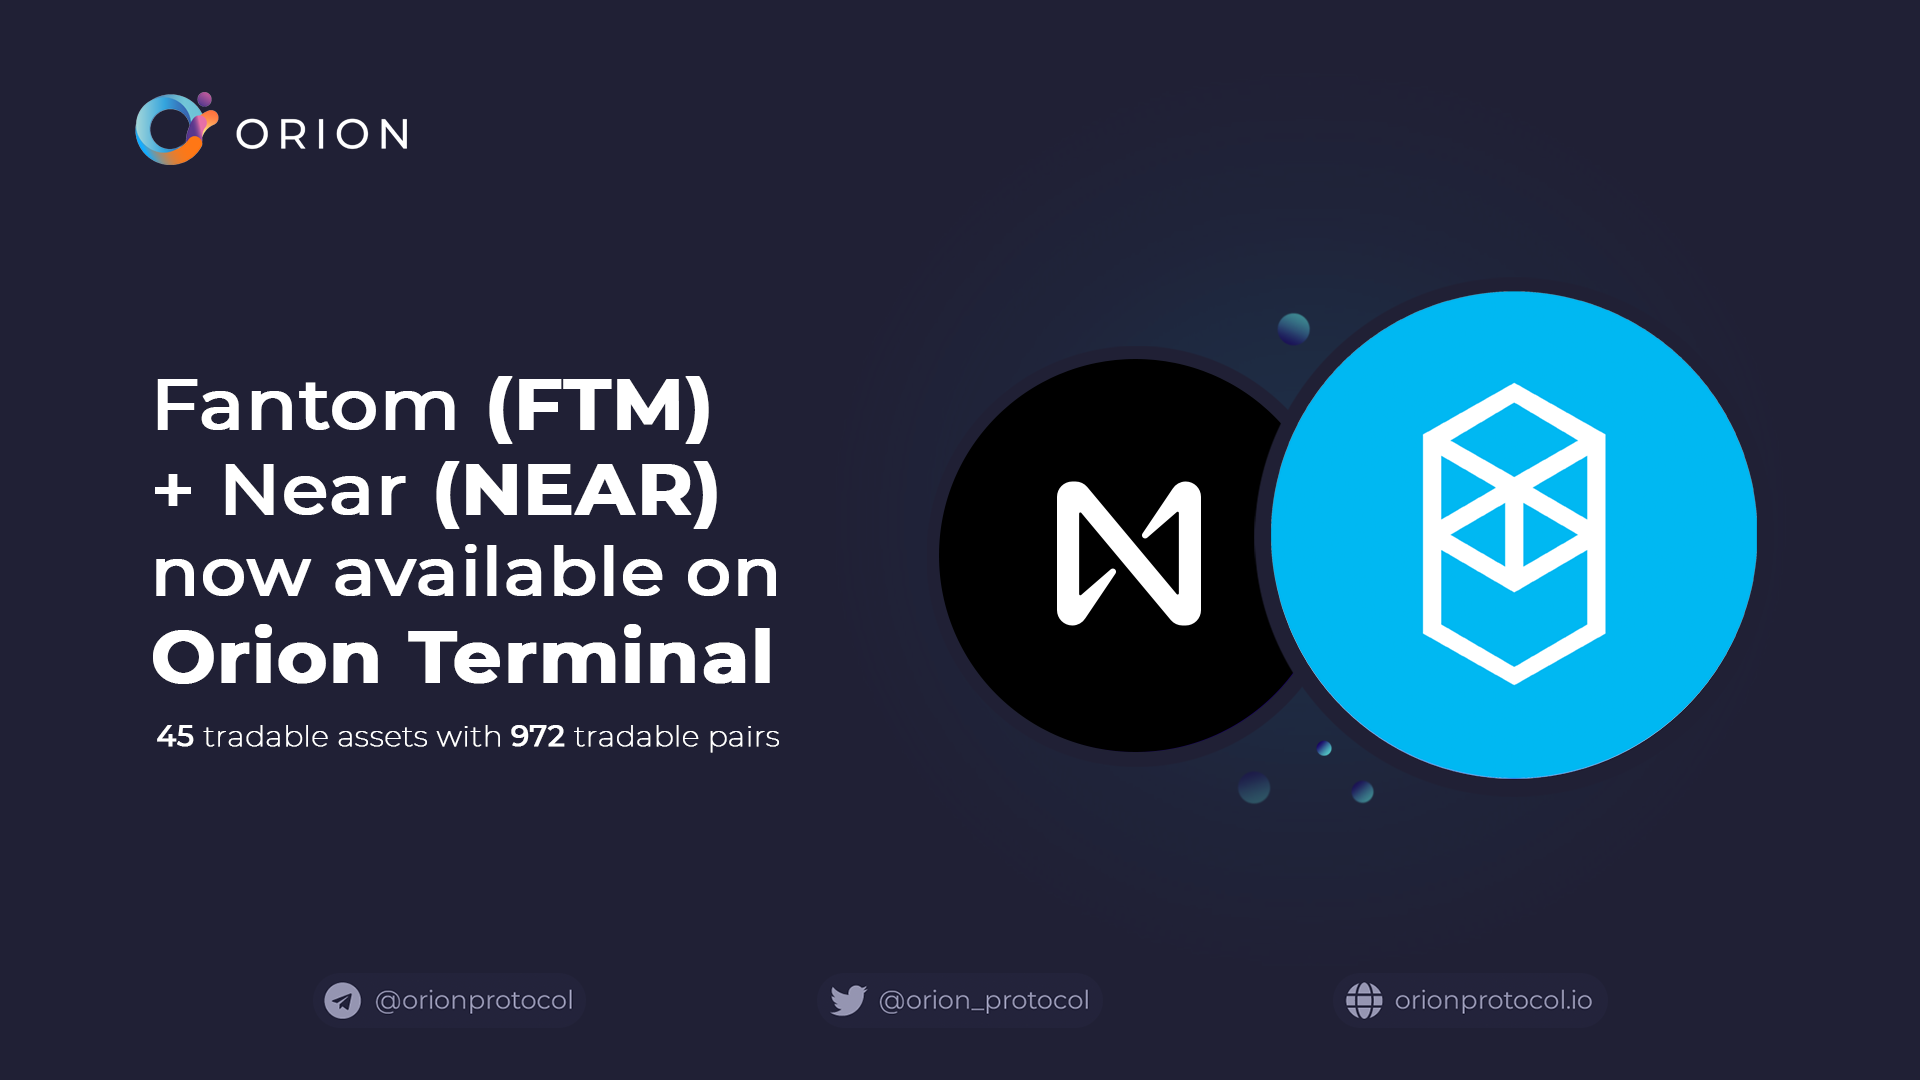 FTM + NEAR added to Orion Terminal